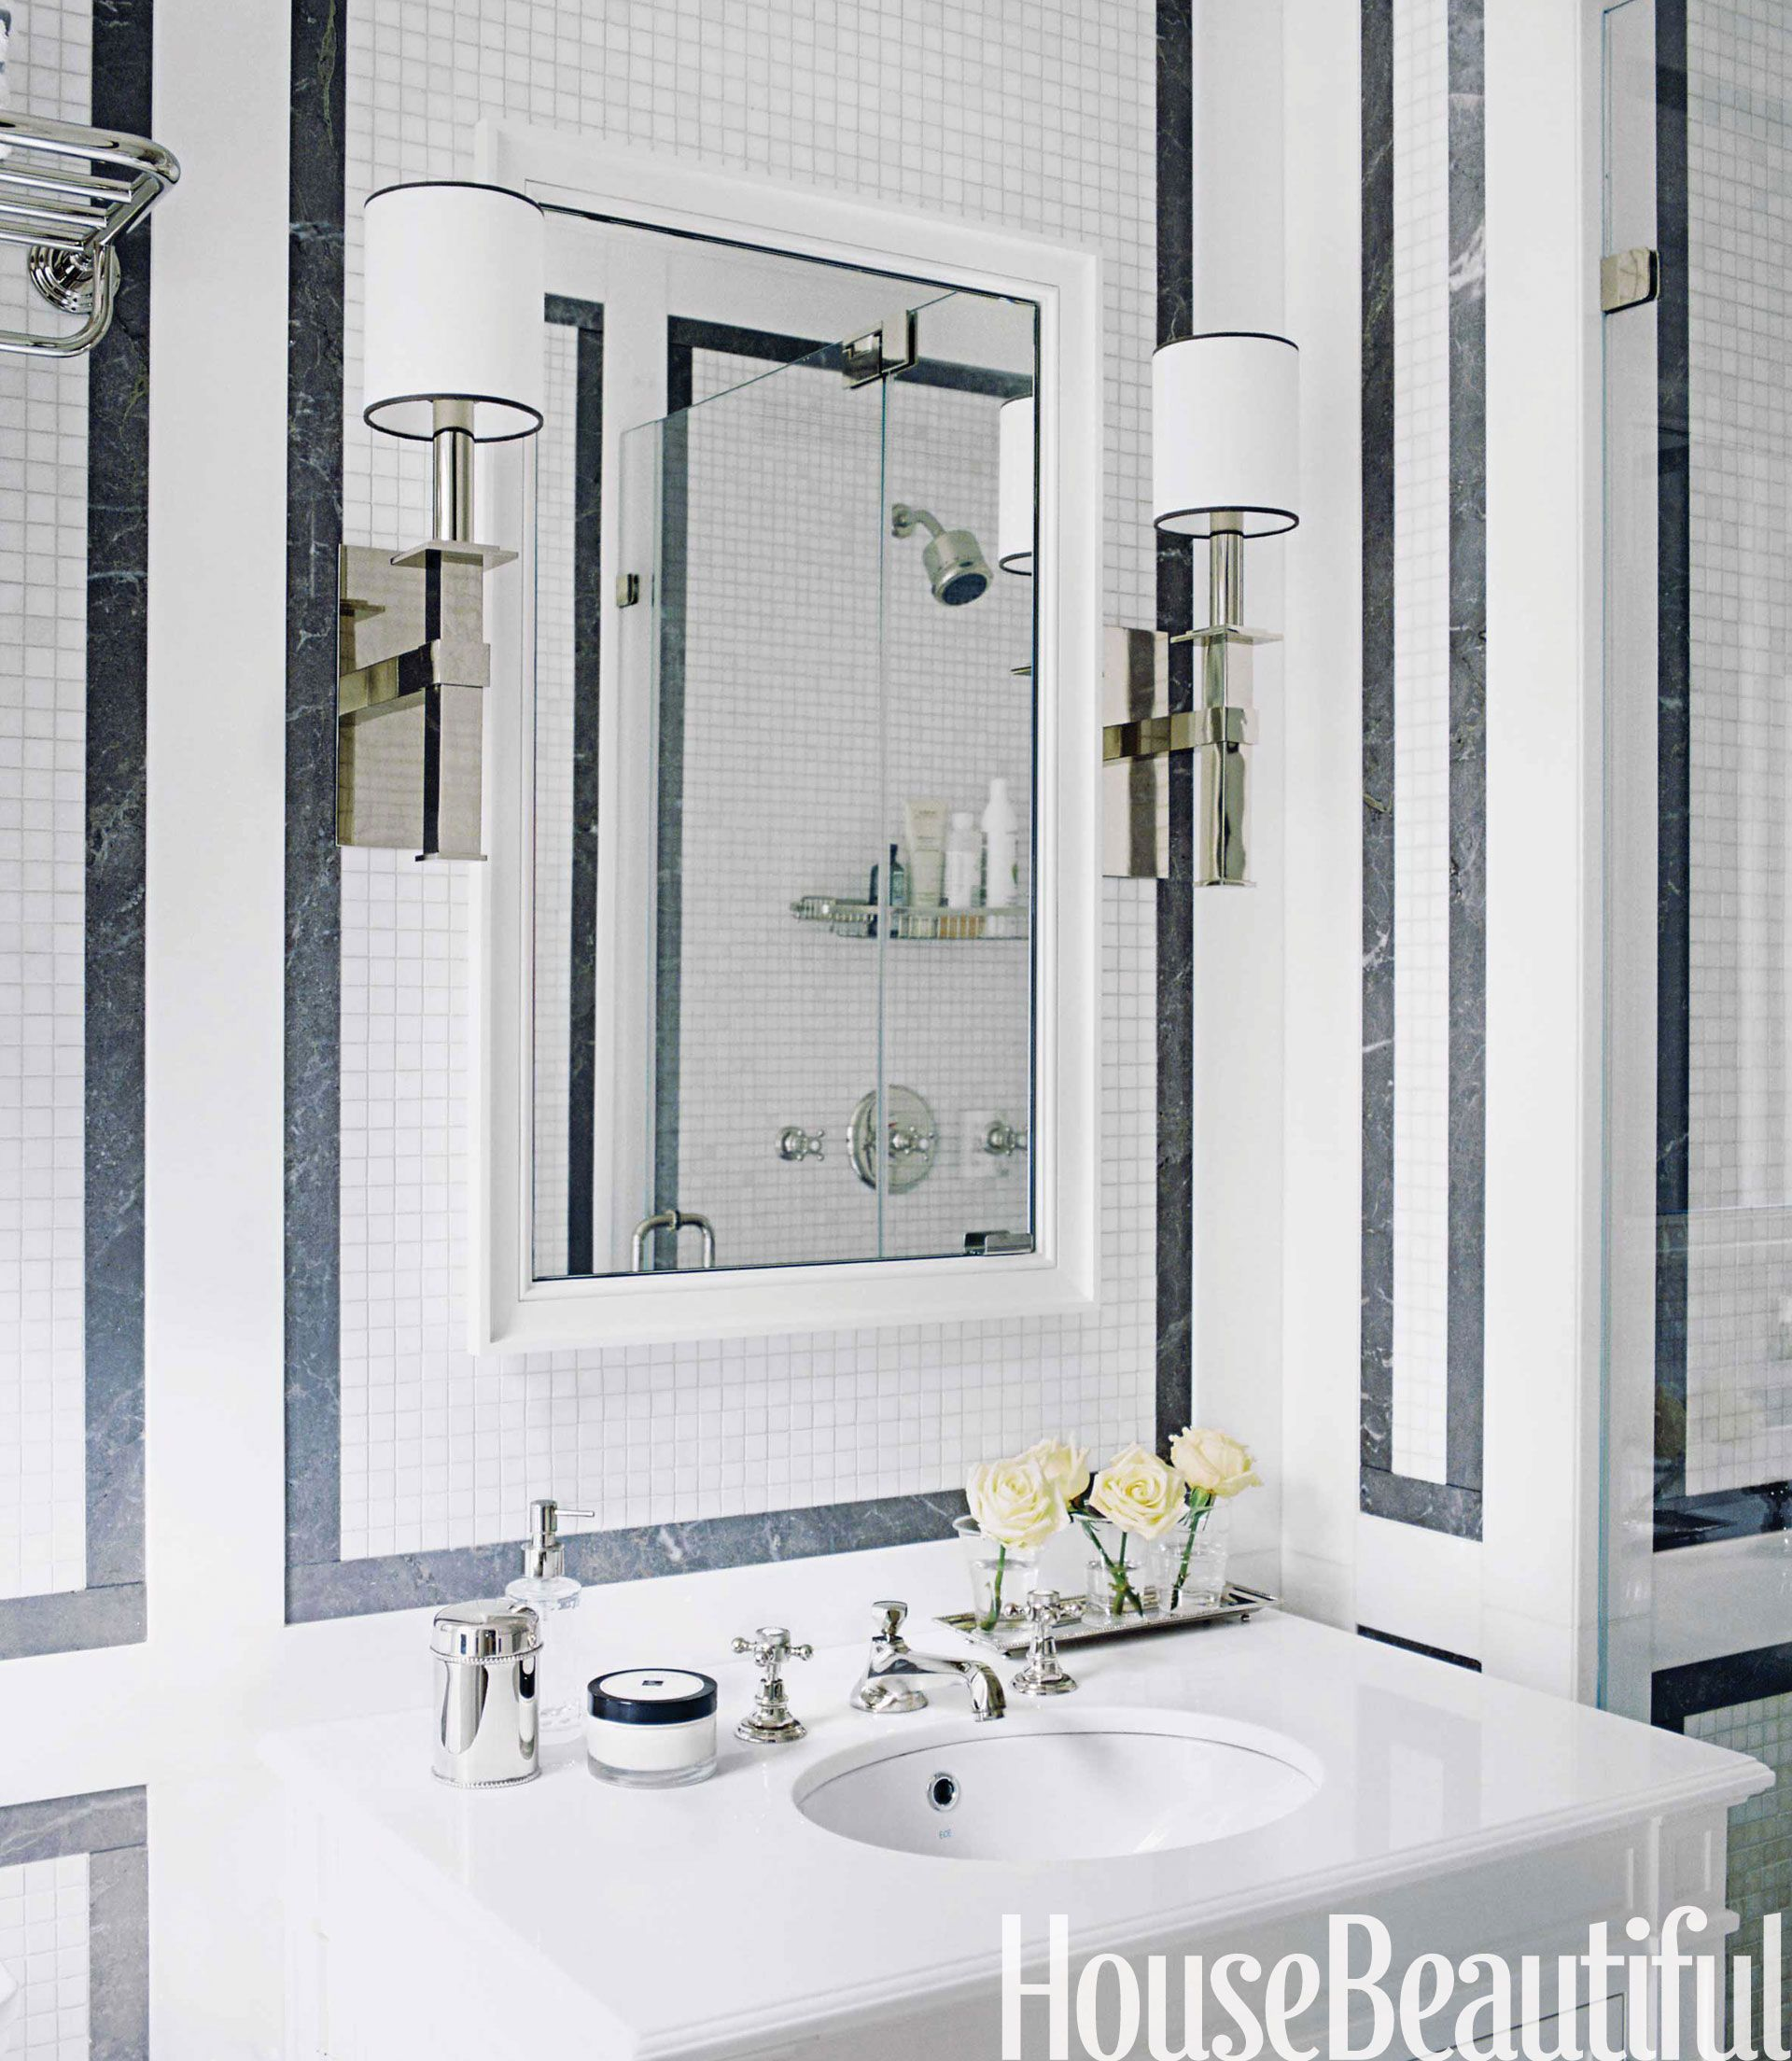 A bathroom with dramatic mosaic tile waterworks sinks and bath